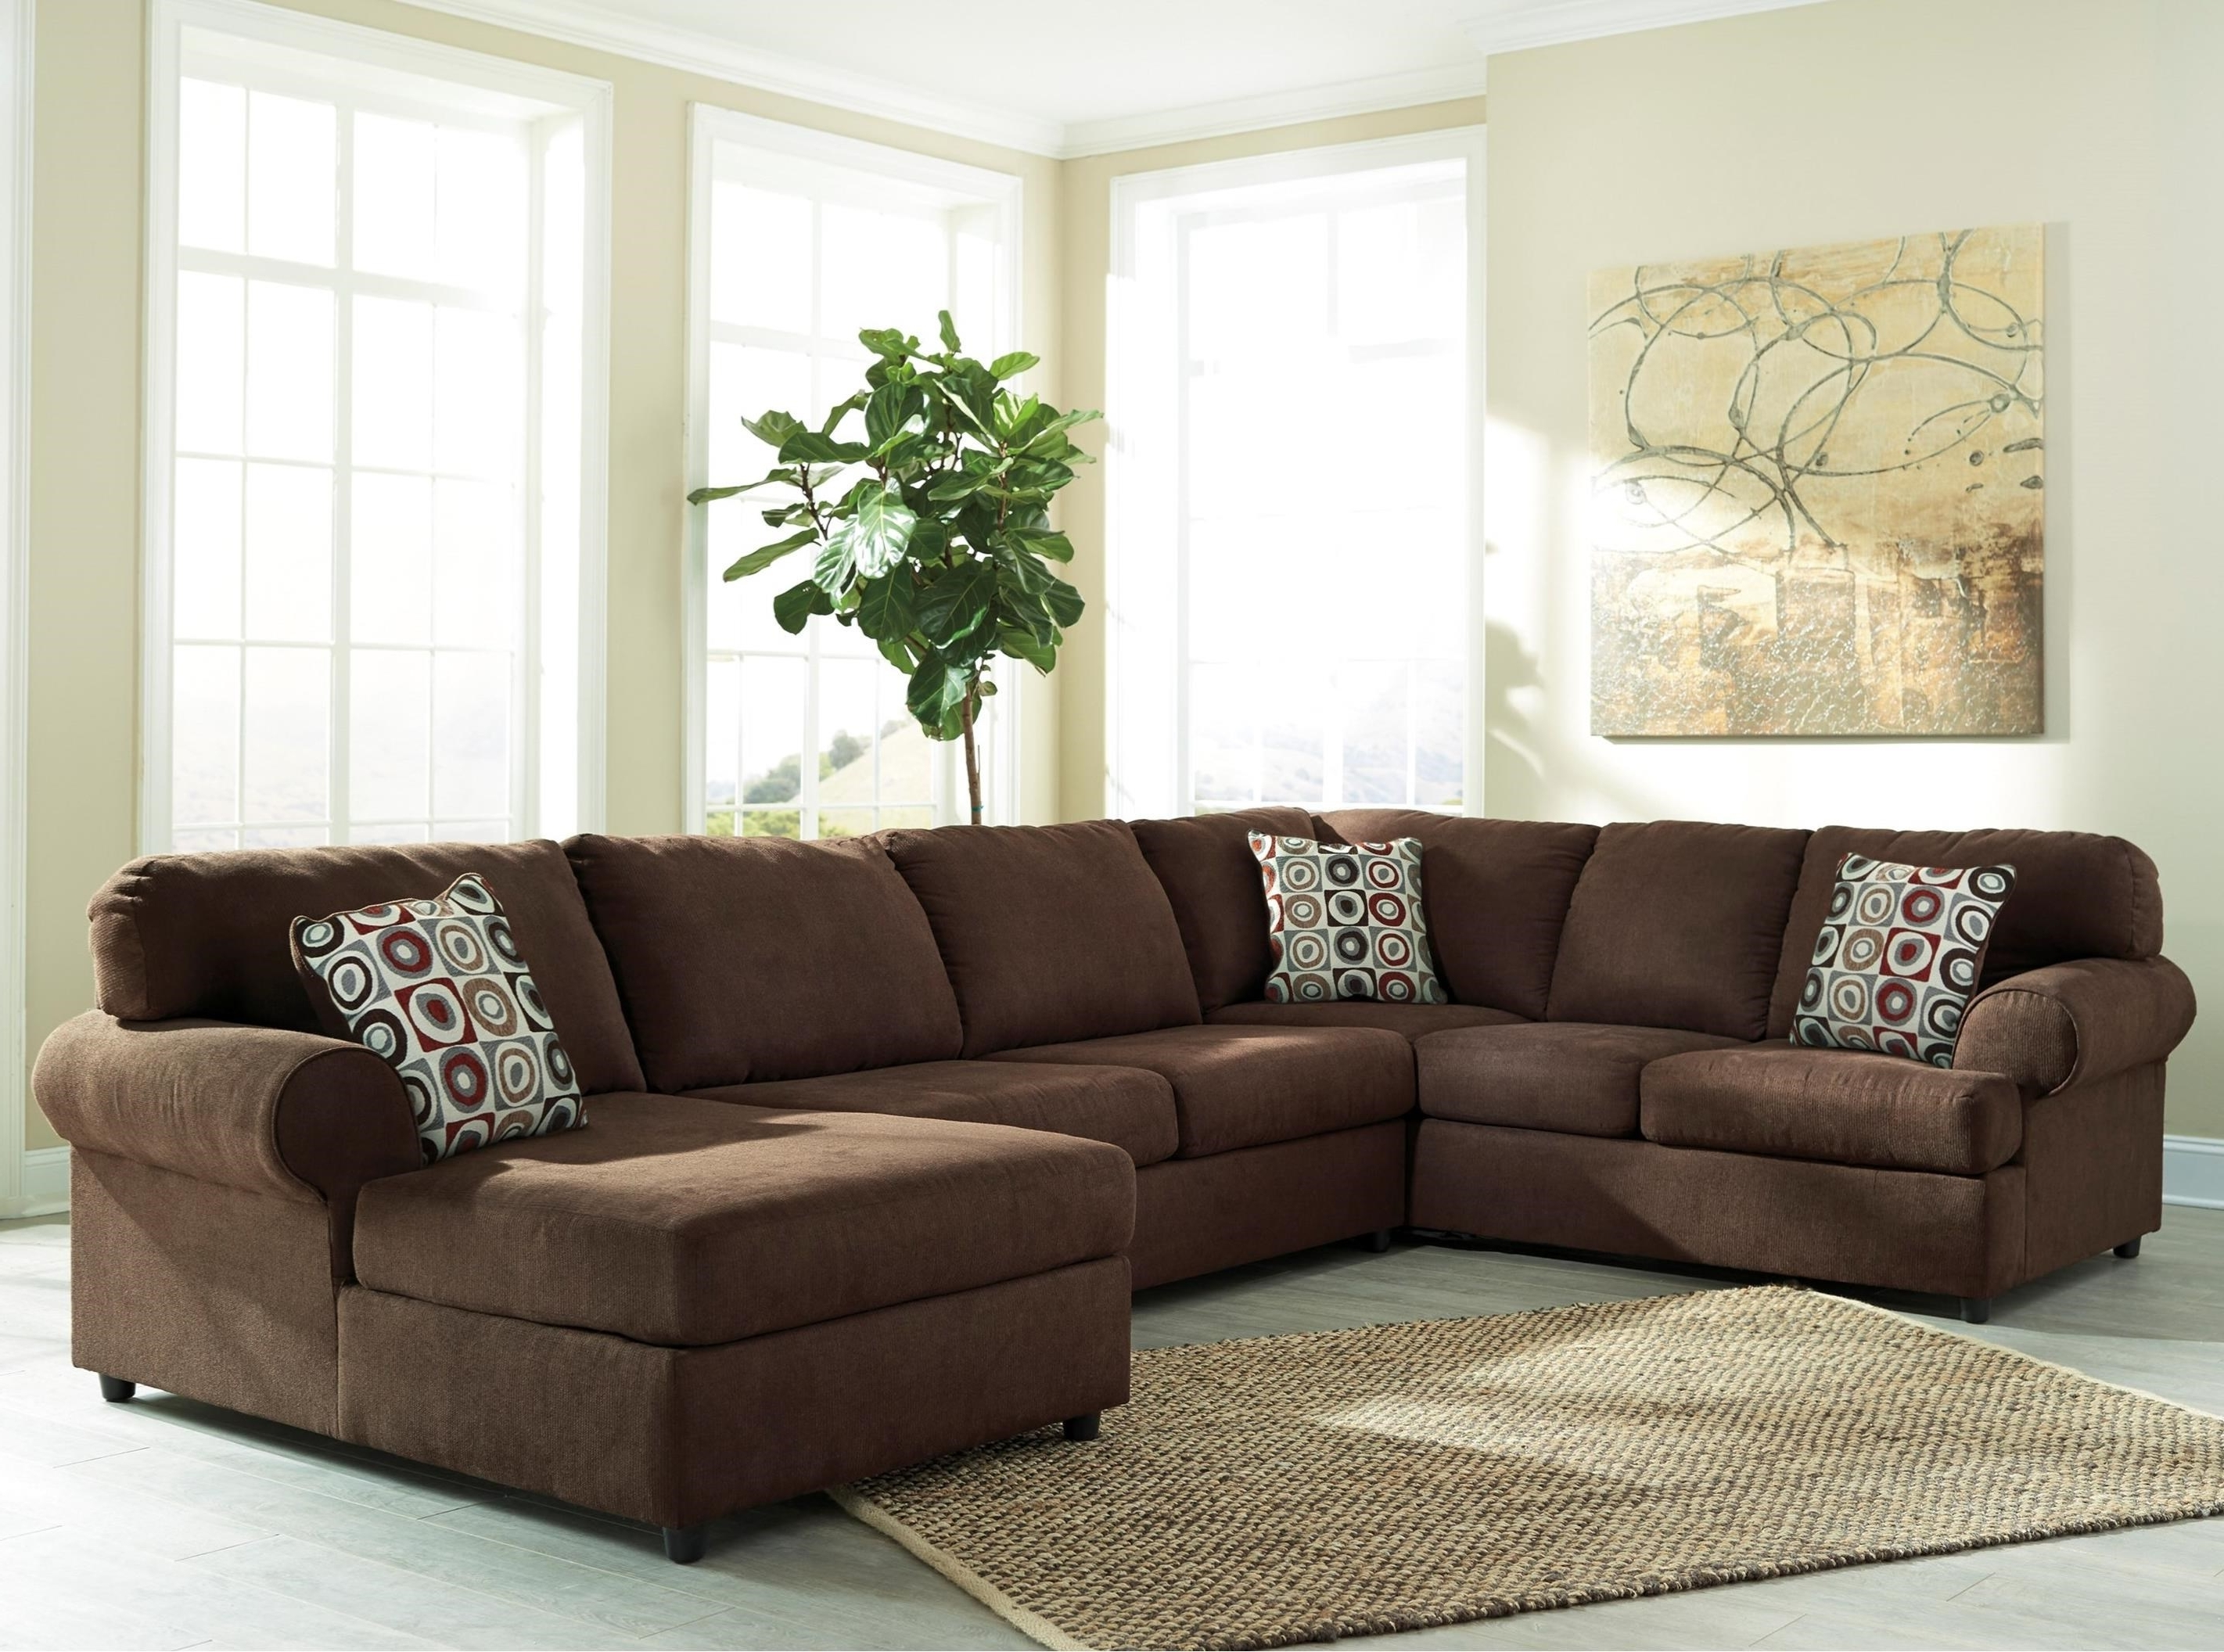 Well Known Signature Designashley Jayceon 3 Piece Sectional With Right With 3 Piece Sectionals With Chaise (View 13 of 15)